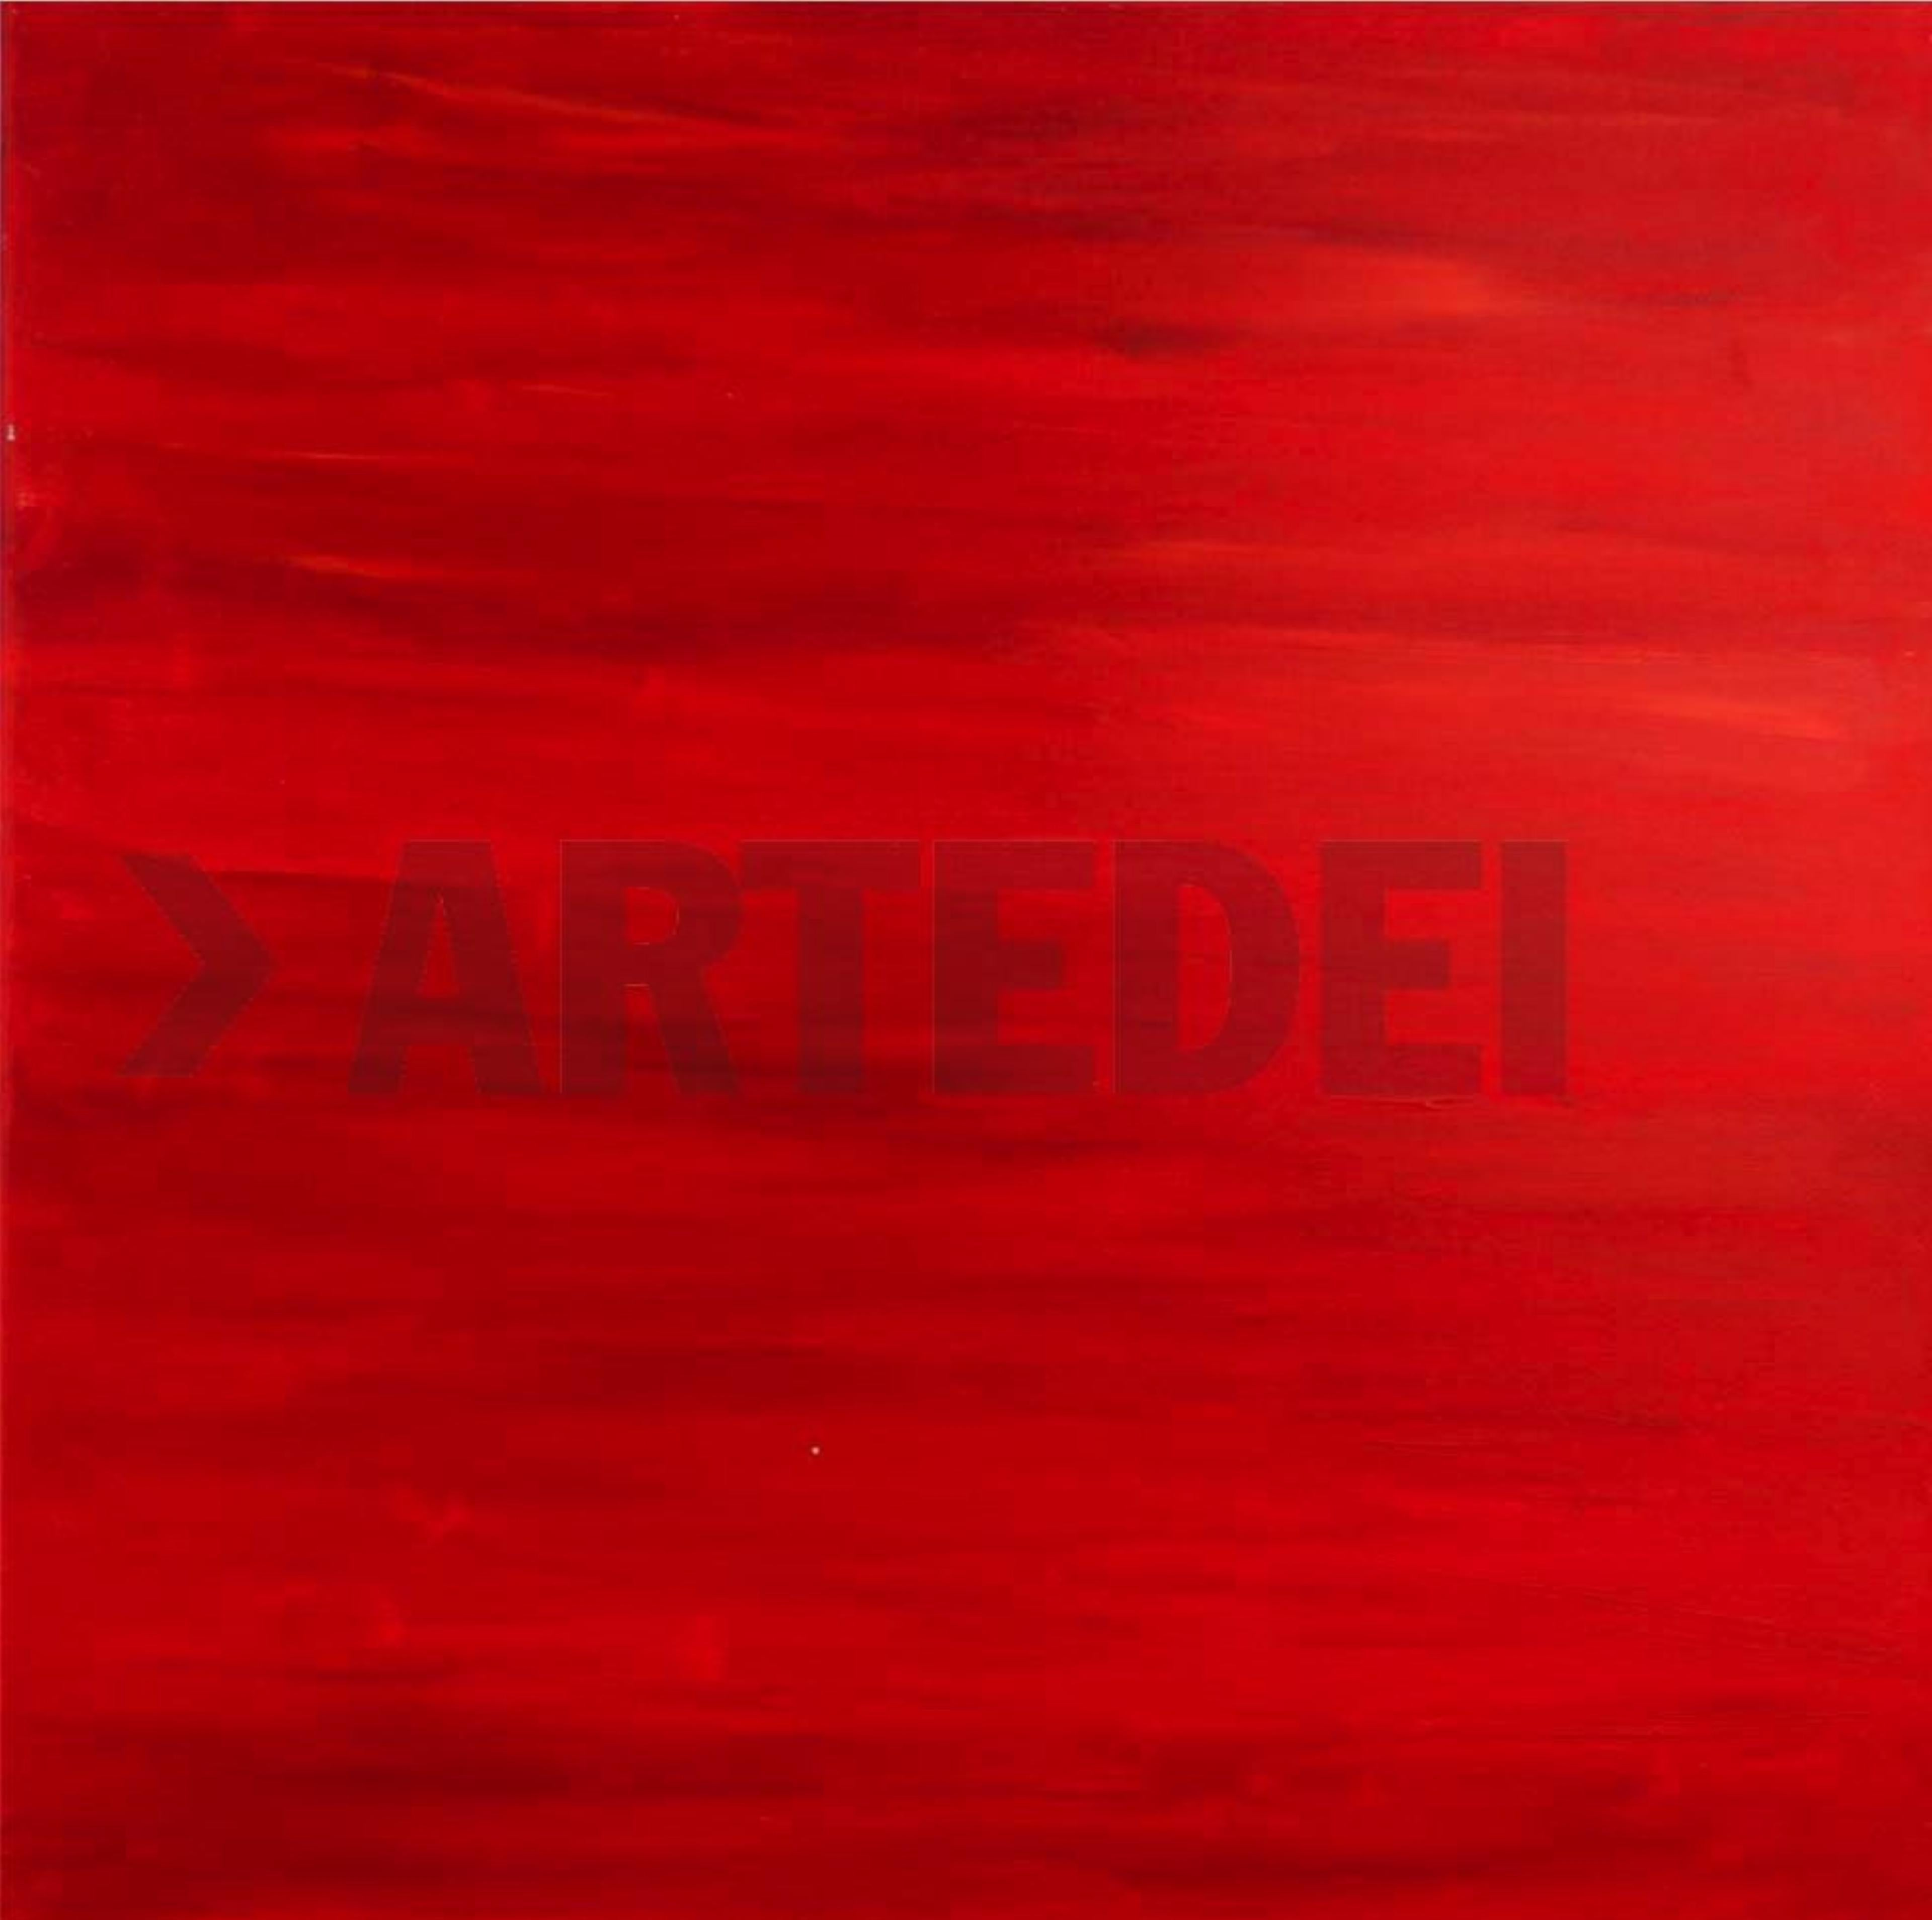 Product image of ARTIST-KAREN-HELDER, COLLECTION-CLASSIC-ABSTRACT-II, SERIES-SERIOUSLY-RED